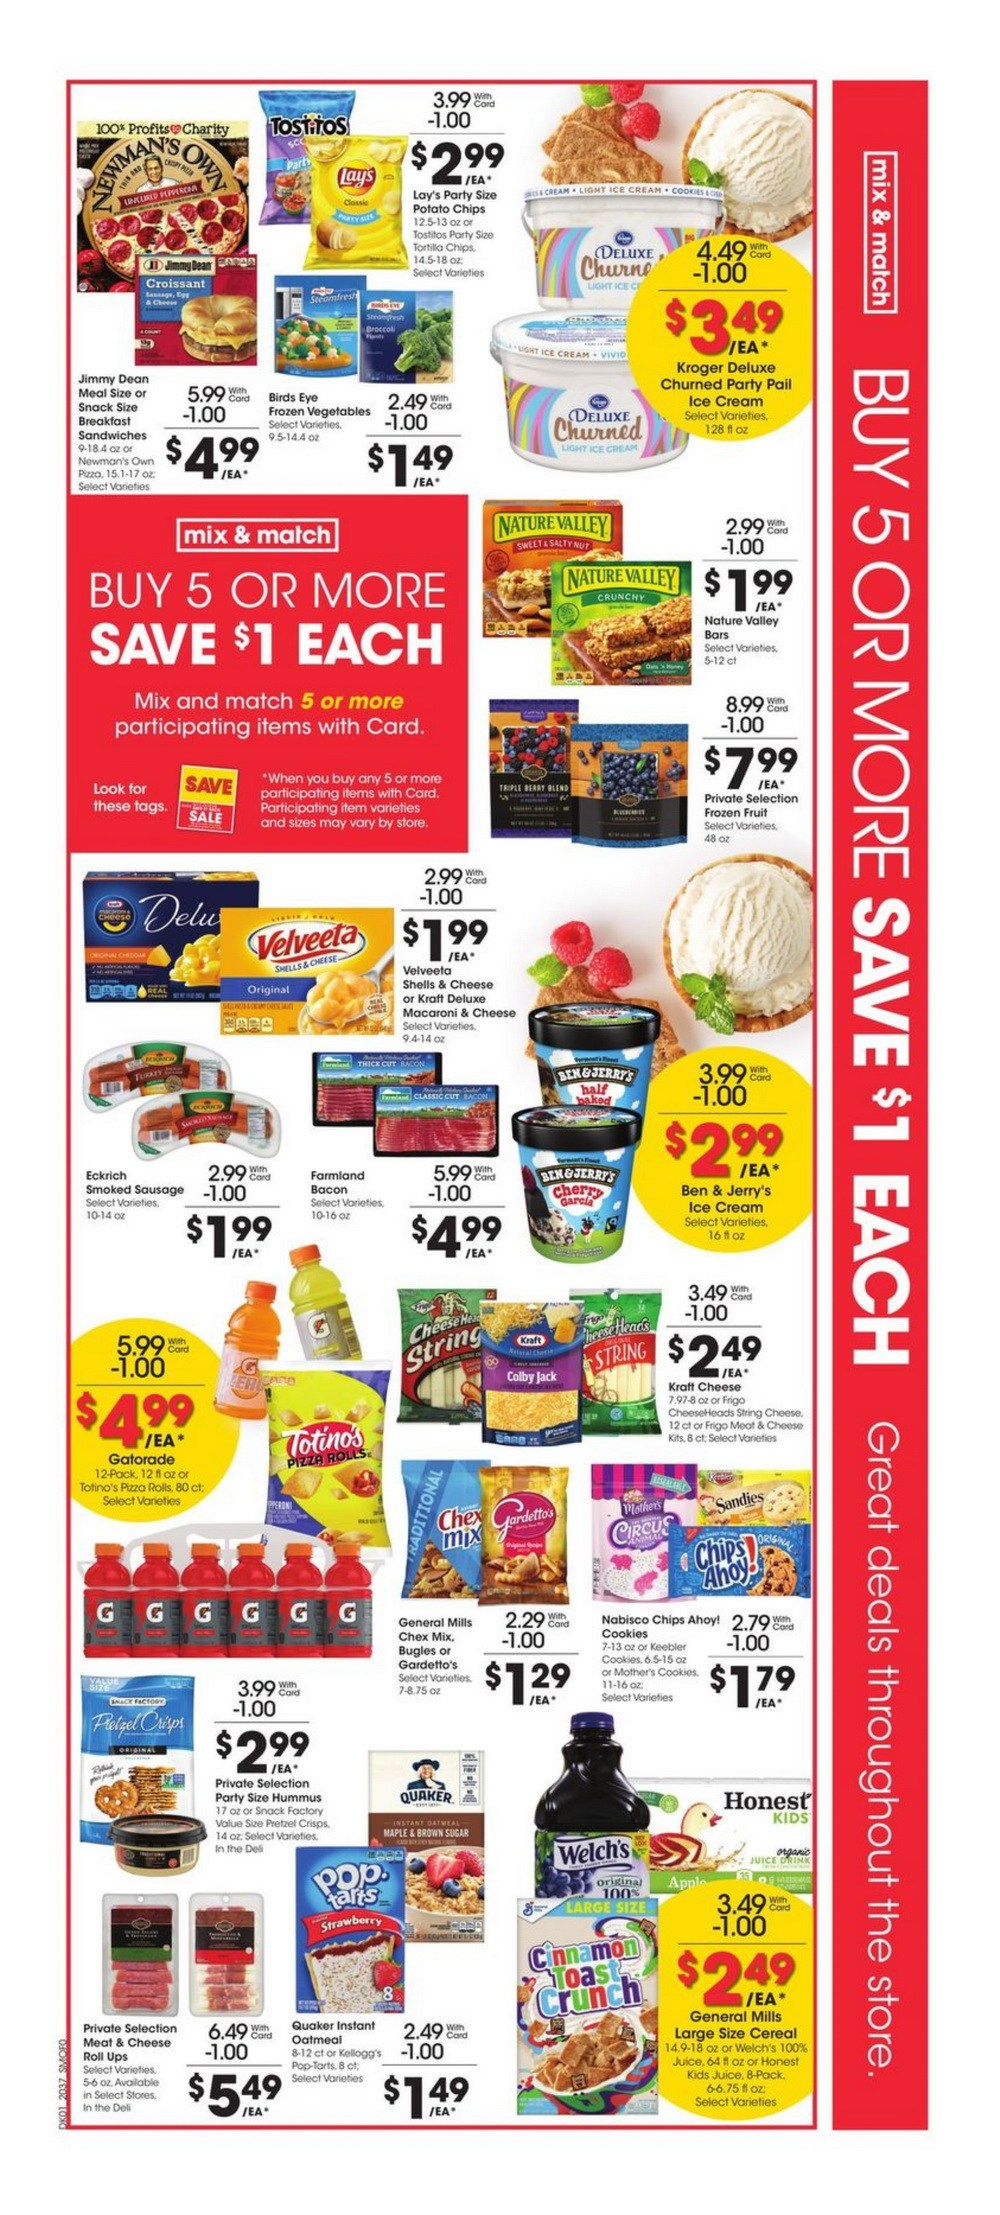 Smith's Food and Drug Weekly Circular Oct 14 - Oct 20, 2020